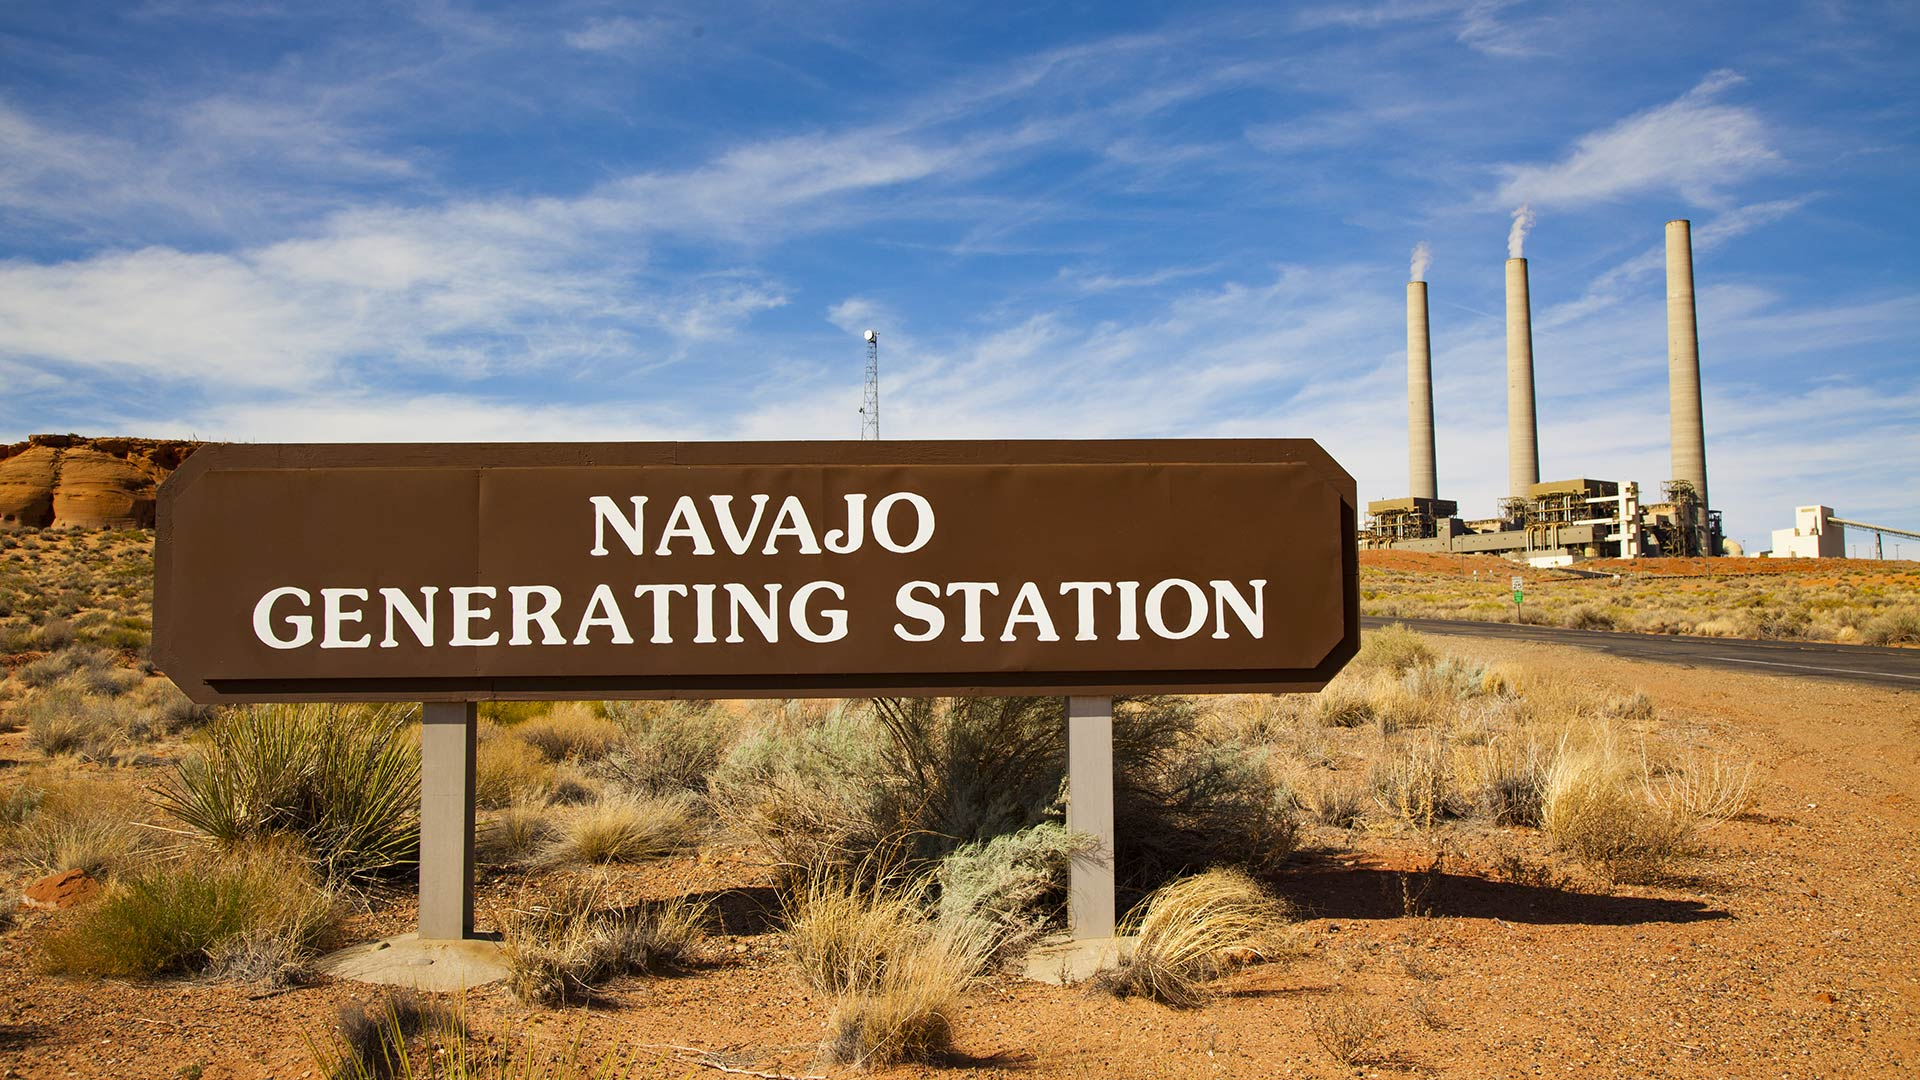 The Navajo Generating Station, April 2018.